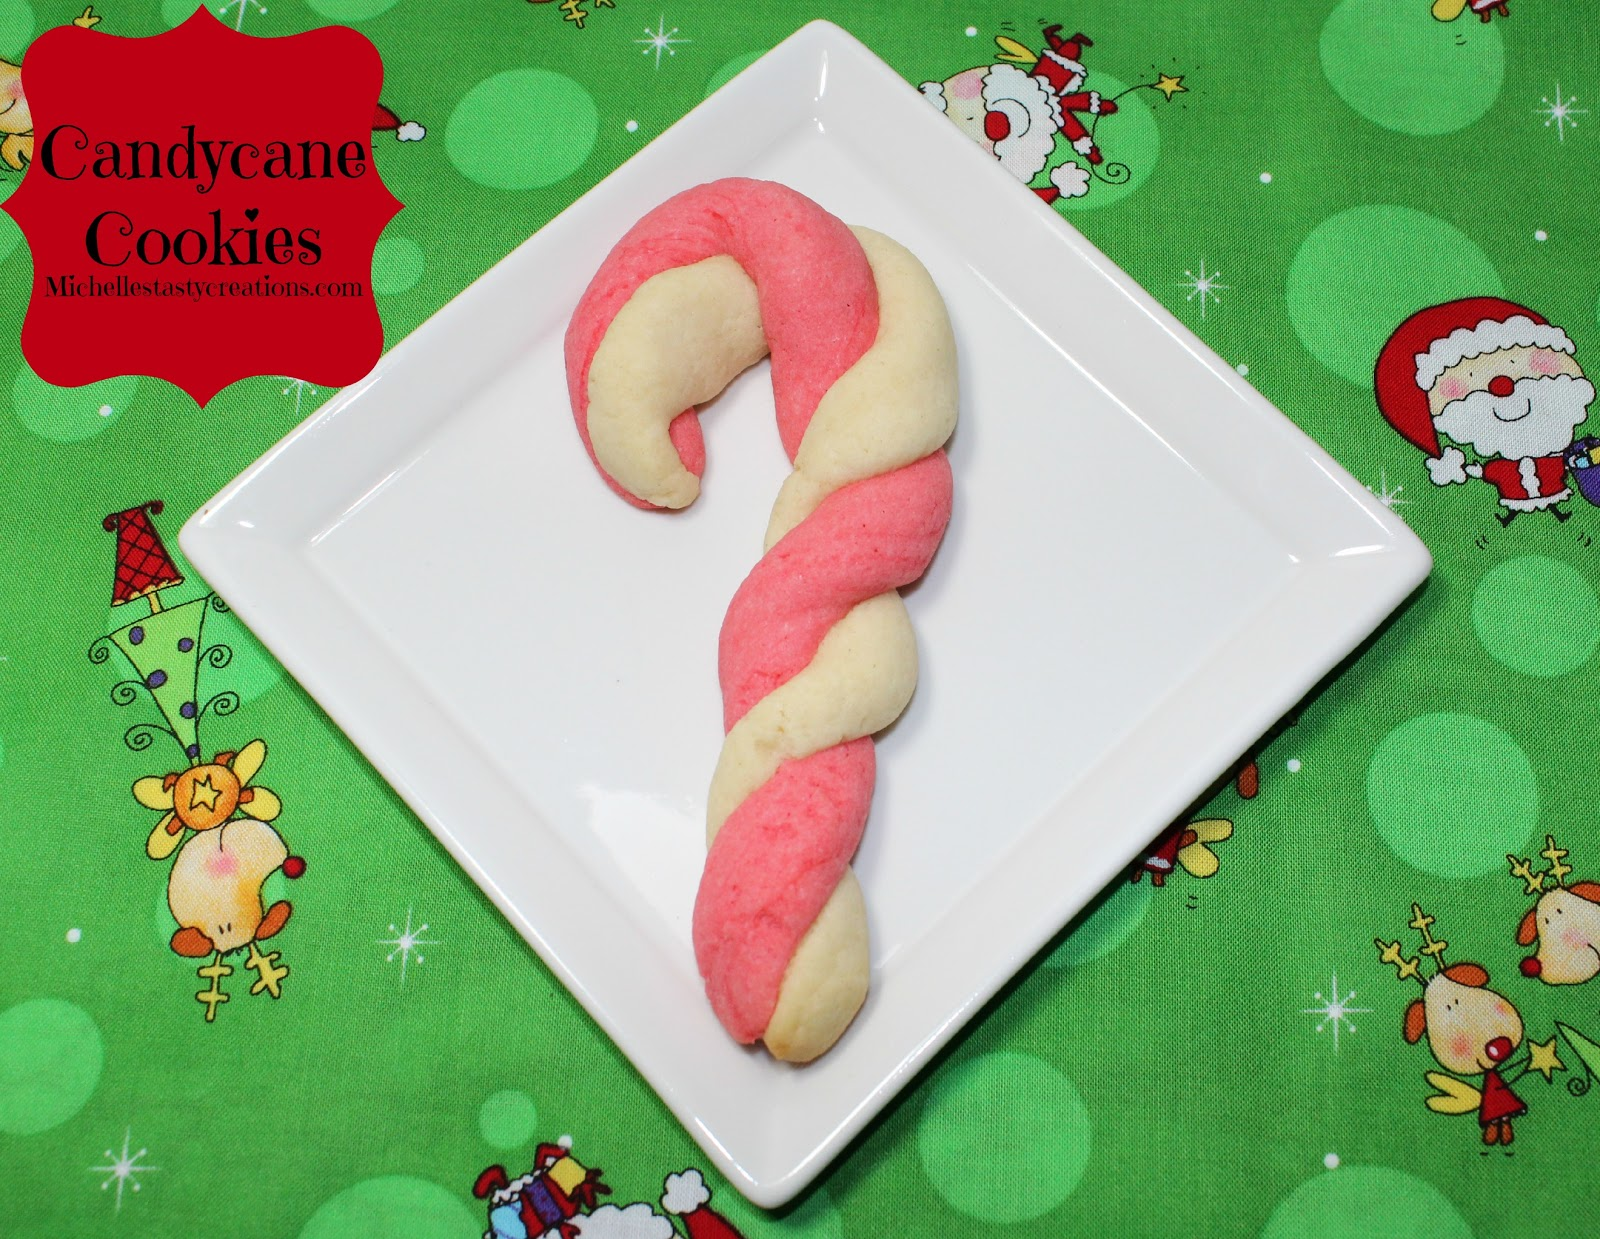 Michelle's Tasty Creations: Candy Cane Cookies